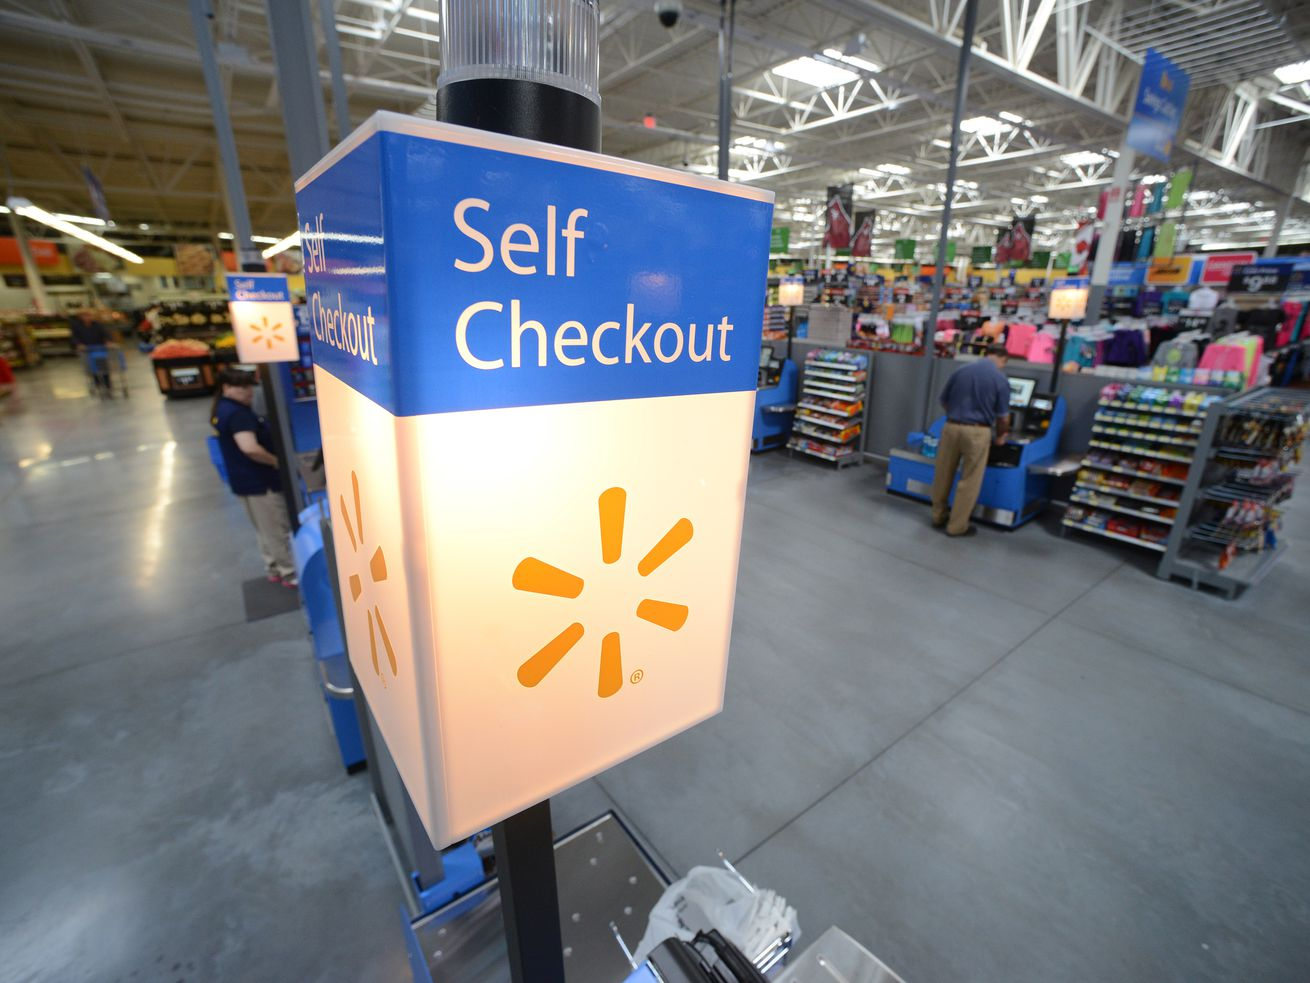 Walmart will test out giant self-checkout stations that could eliminate cashiers completely.